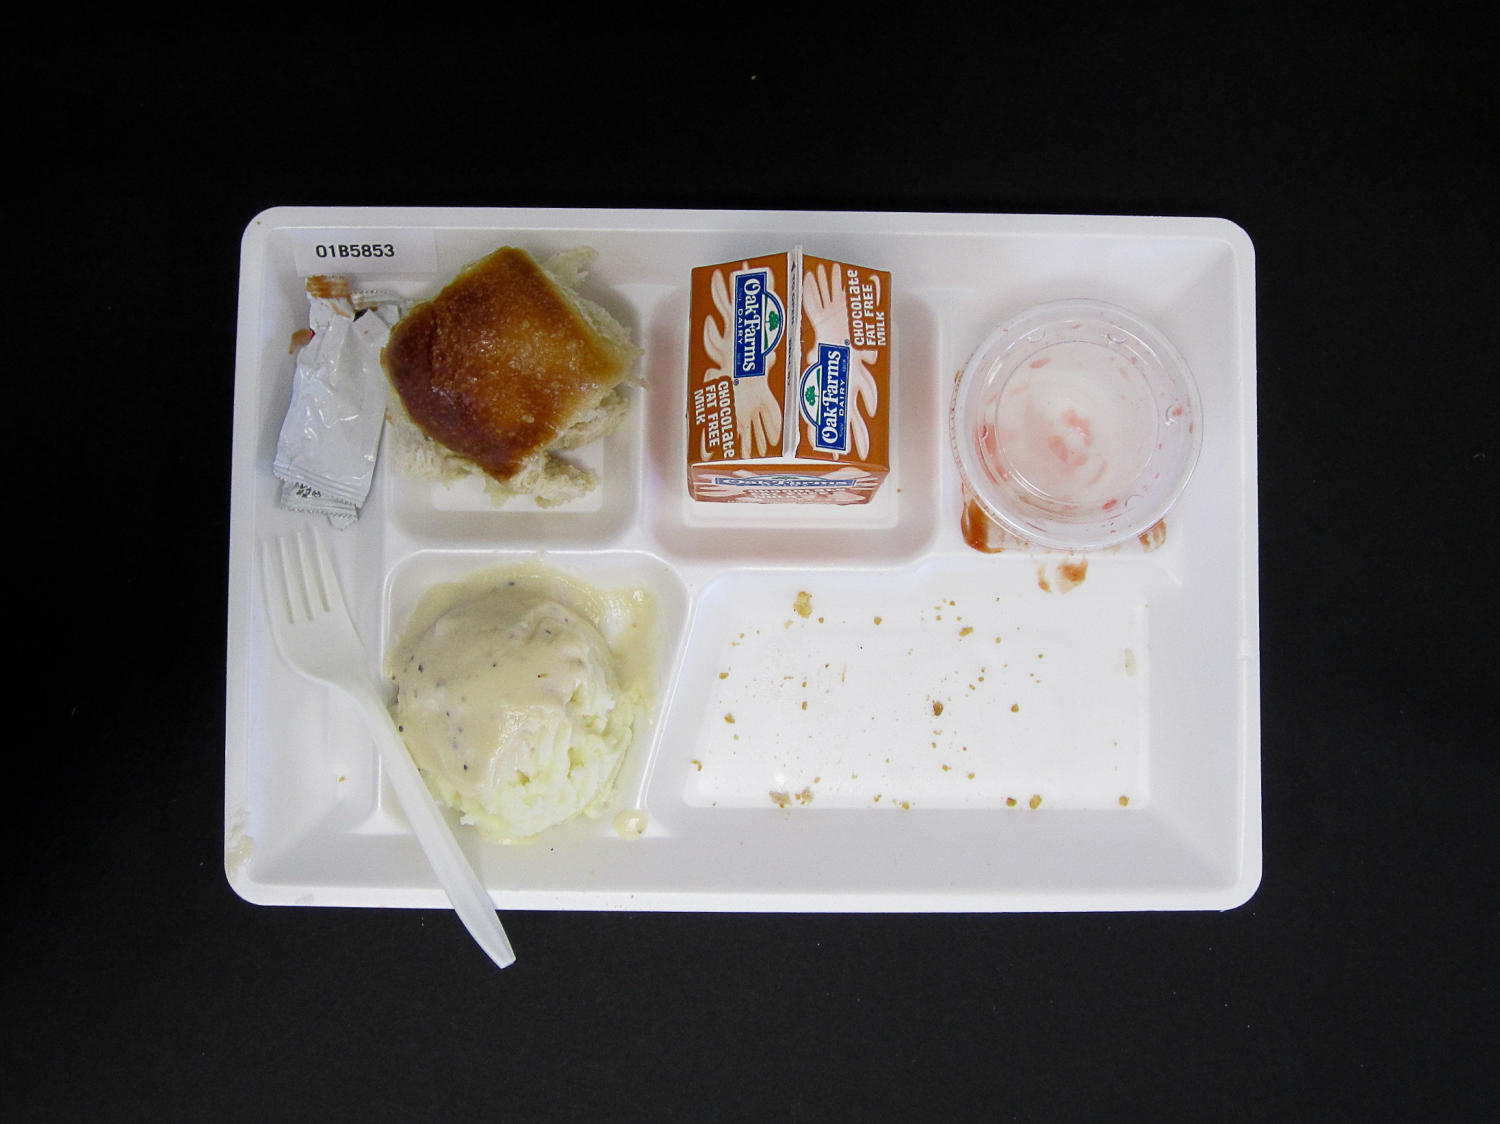 Student Lunch Tray: 01_20110415_01B5853                                                                                                      [Sequence #]: 2 of 2